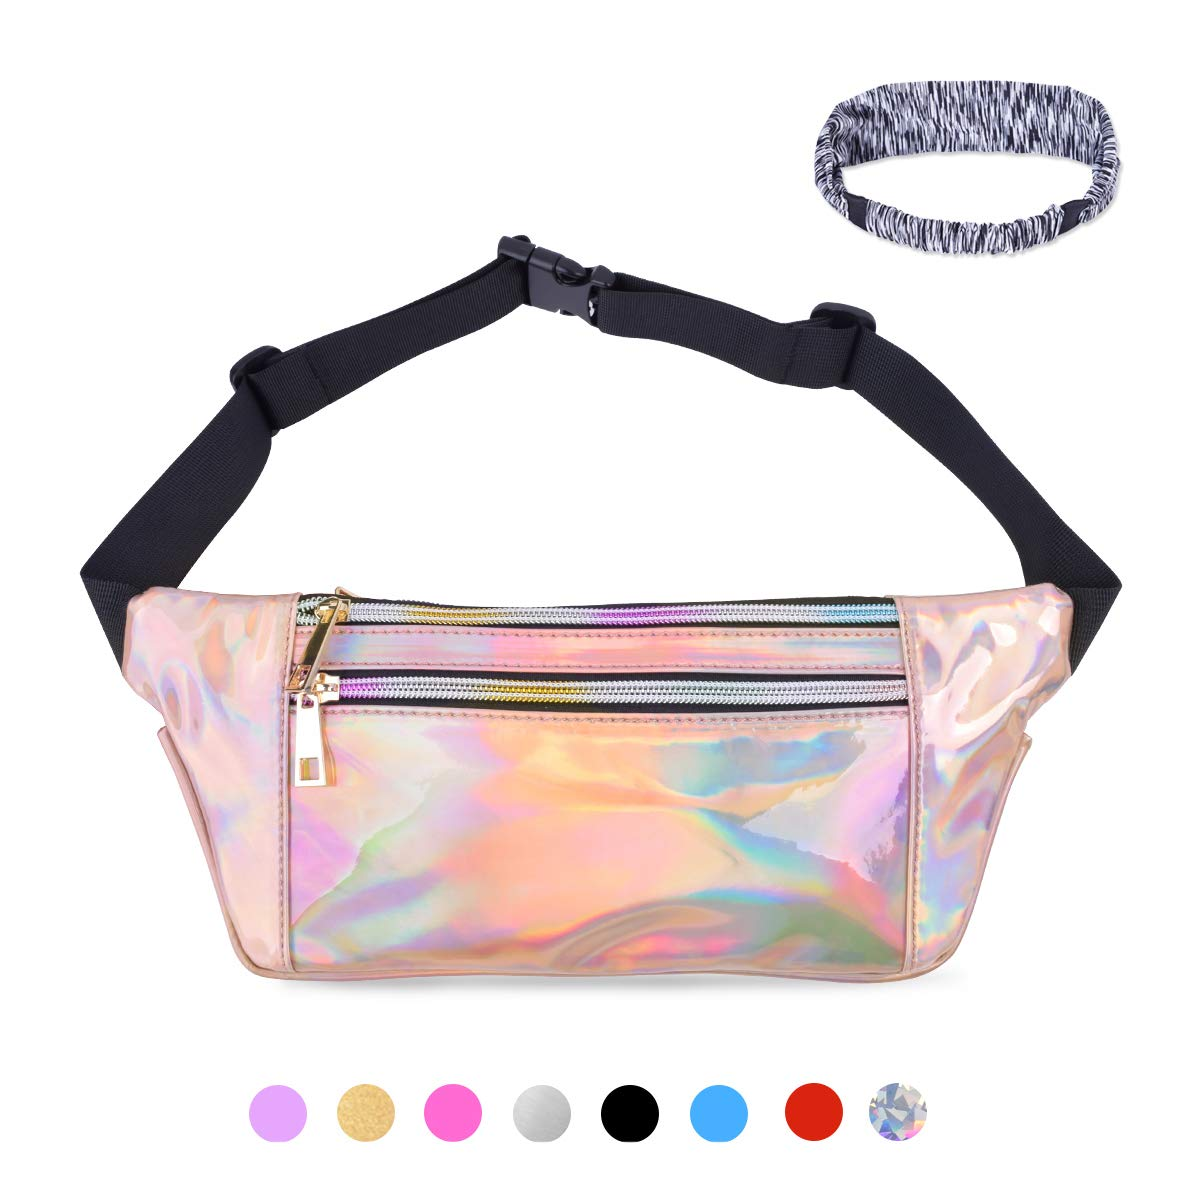 831340ea90d2 Suxman Holographic Fanny Pack for Women and Men, Fashion Cool Fanny Packs  for Girls, Waterproof Shiny Waist Pack with Adjustable Belt for Festival,  ...